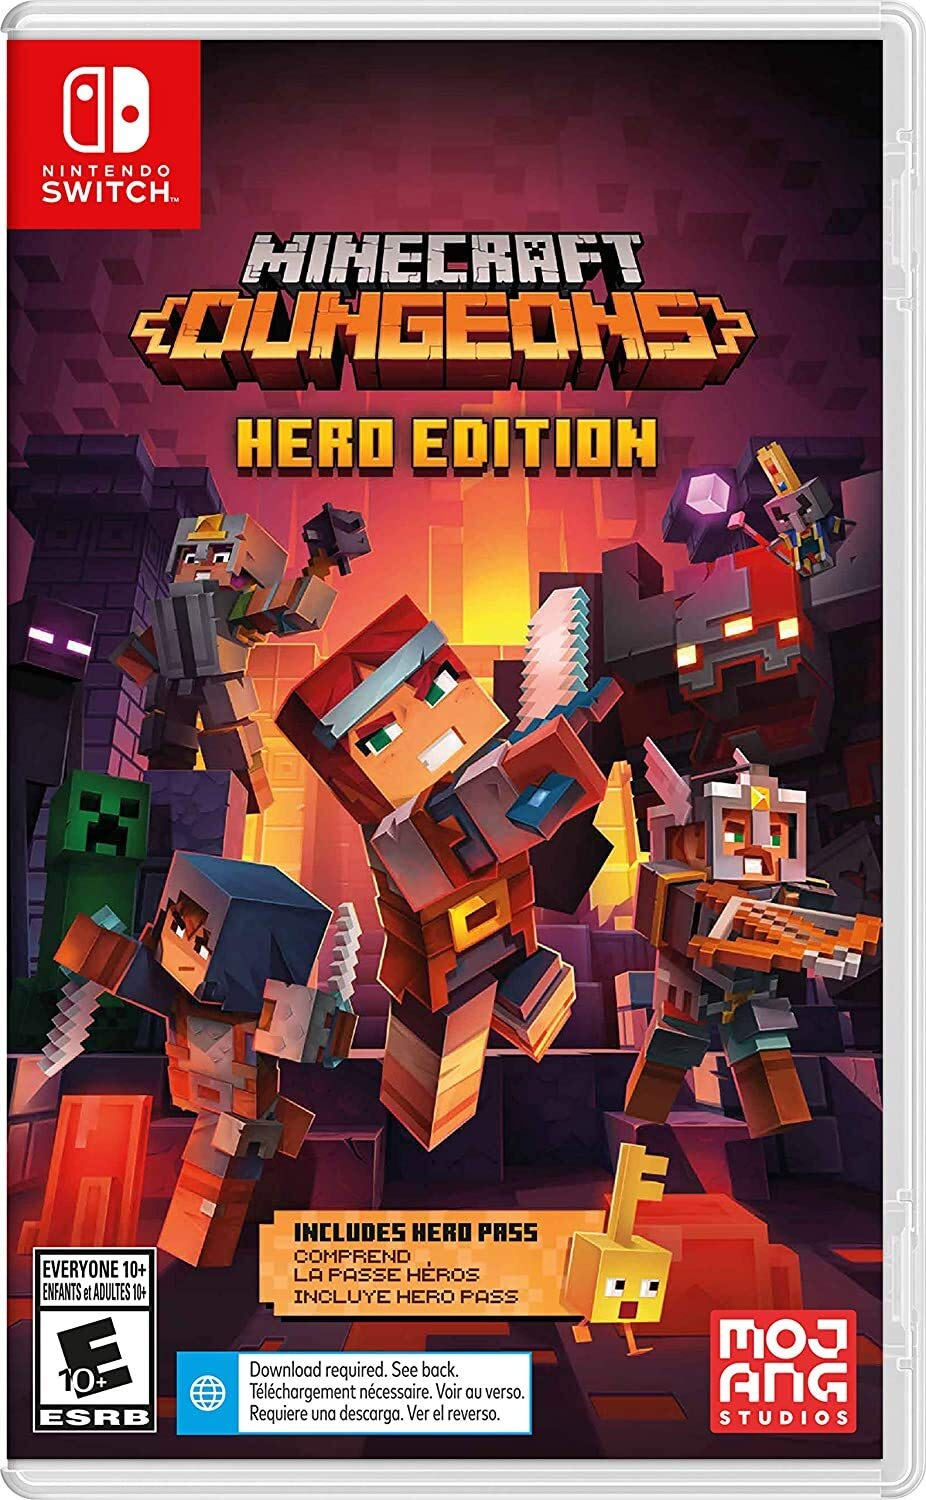 Nintendo Switch box art for Minecraft Dungeons: Hero Edition, which features a party defeating mobs.